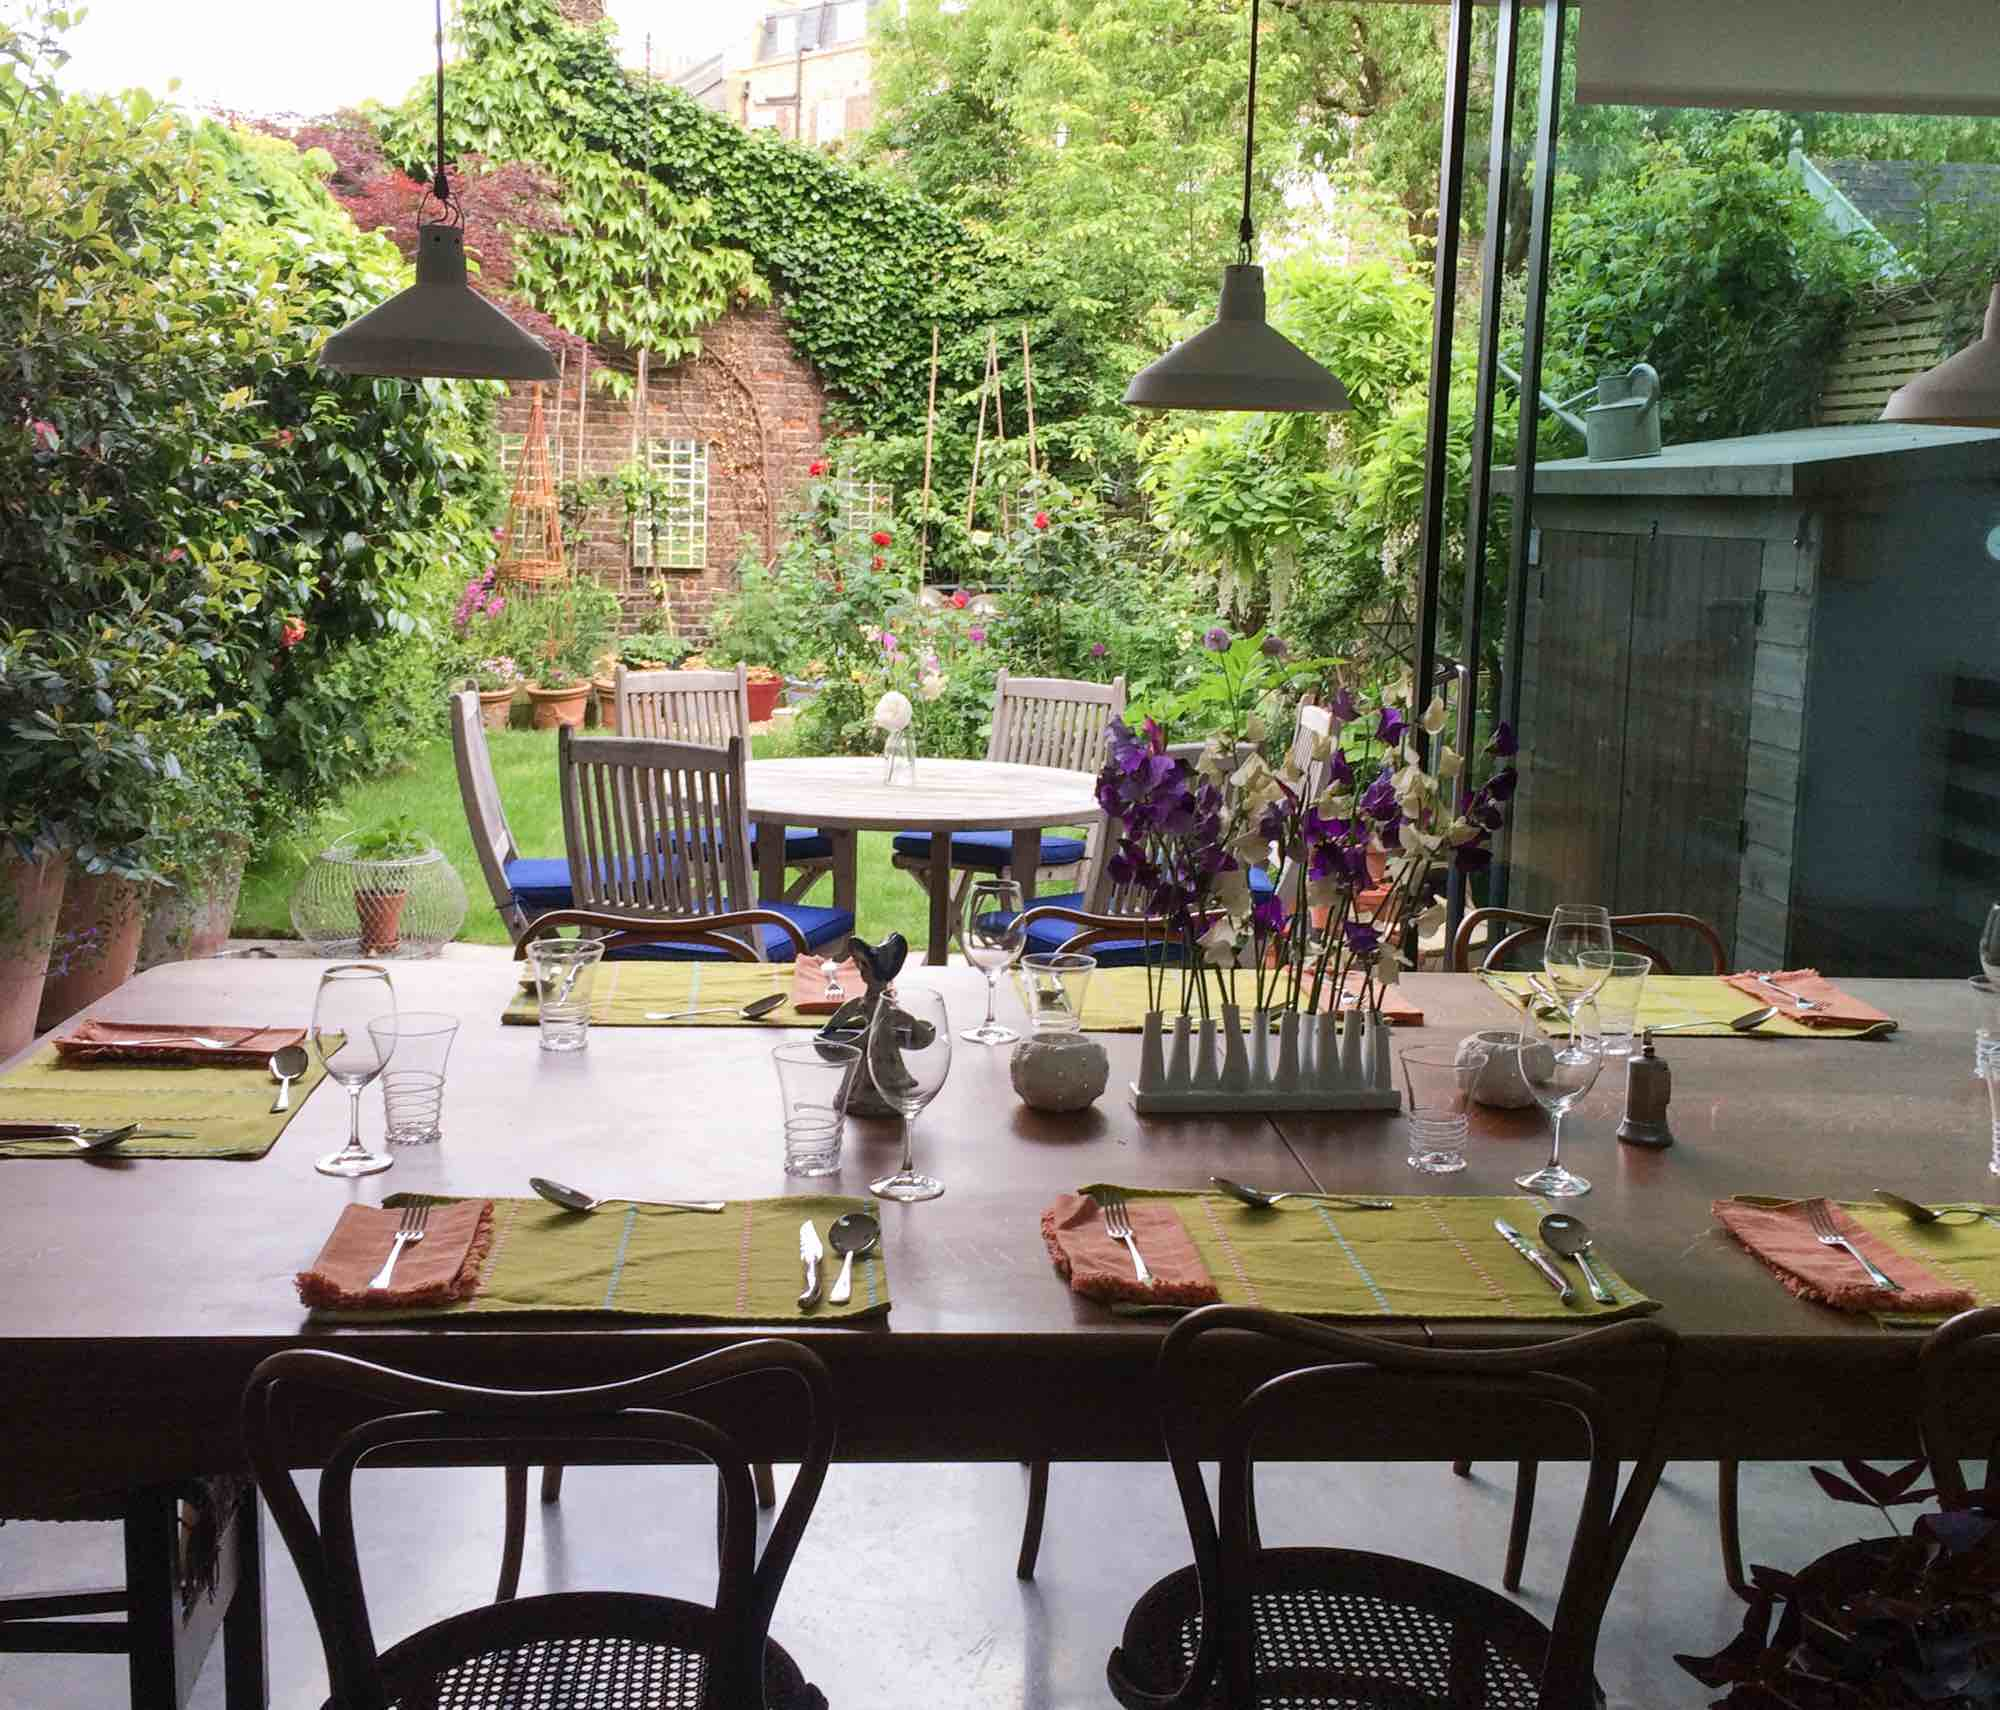 London kitchen looking out onto garden in summer